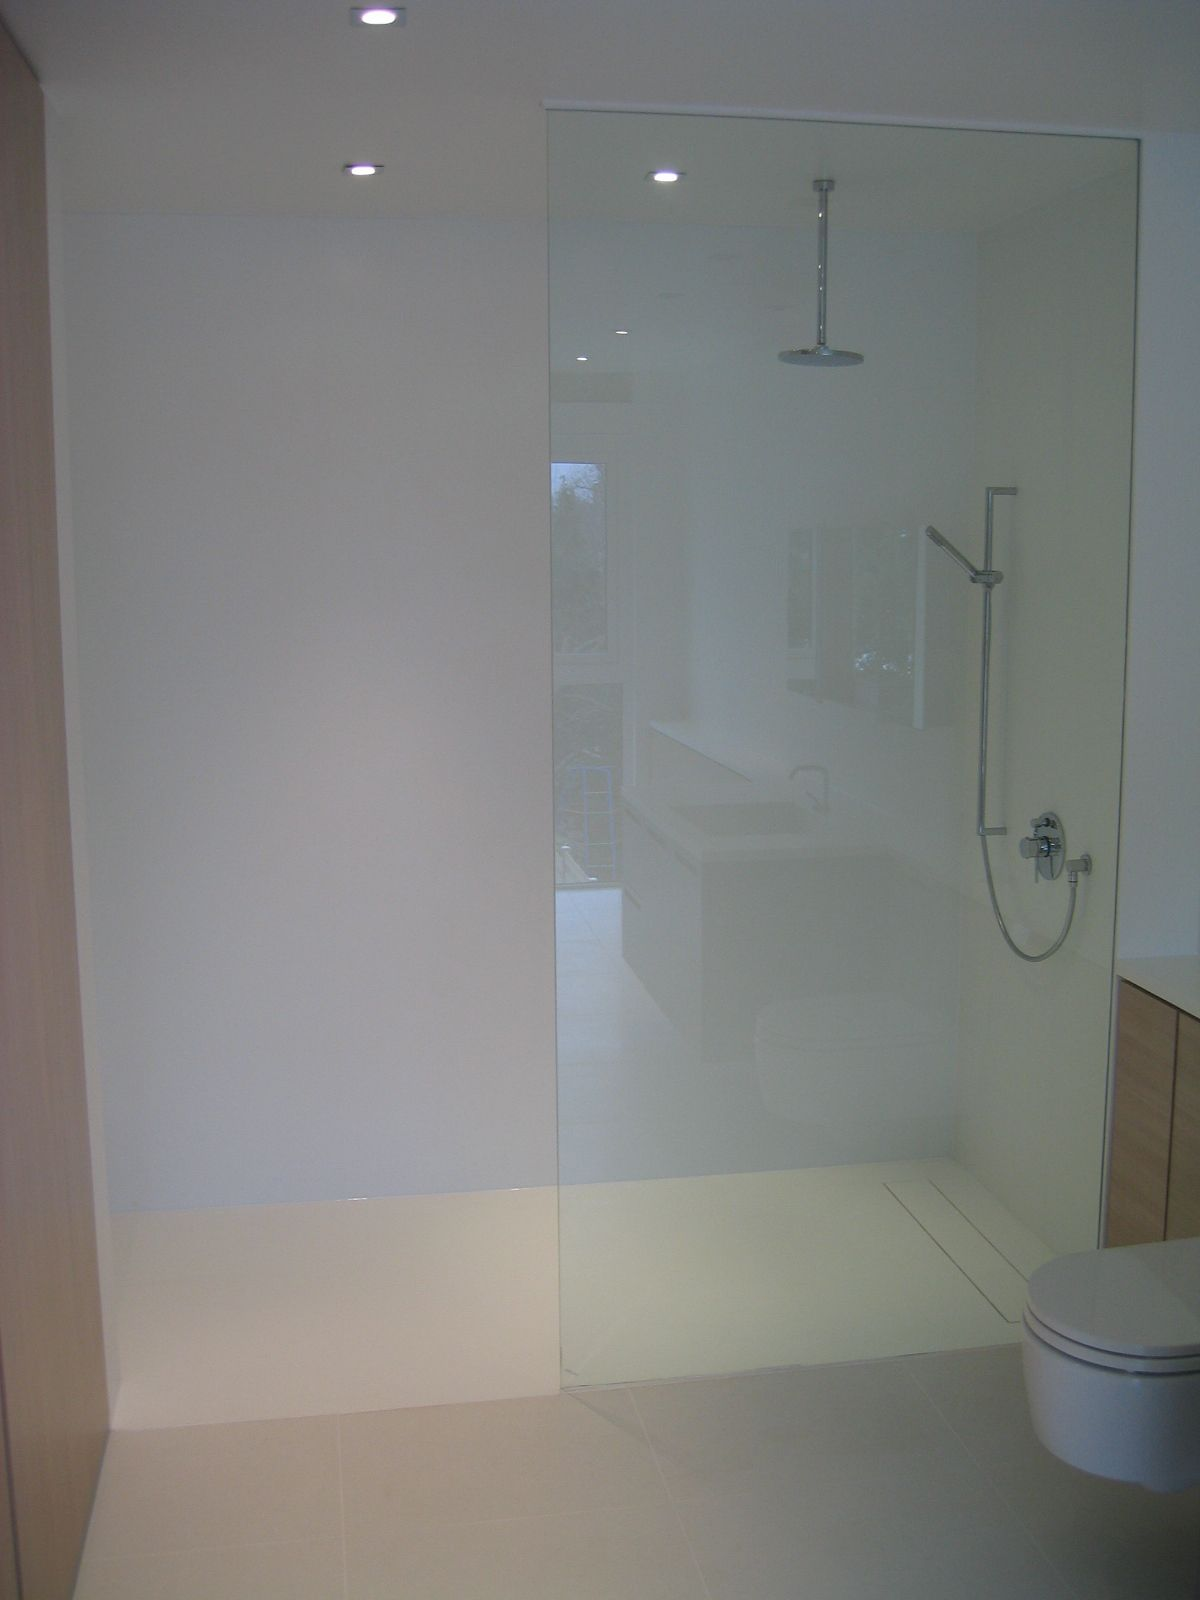 Wetroom floors solidity bespoke solidity wet room floor with trough waste dailygadgetfo Choice Image